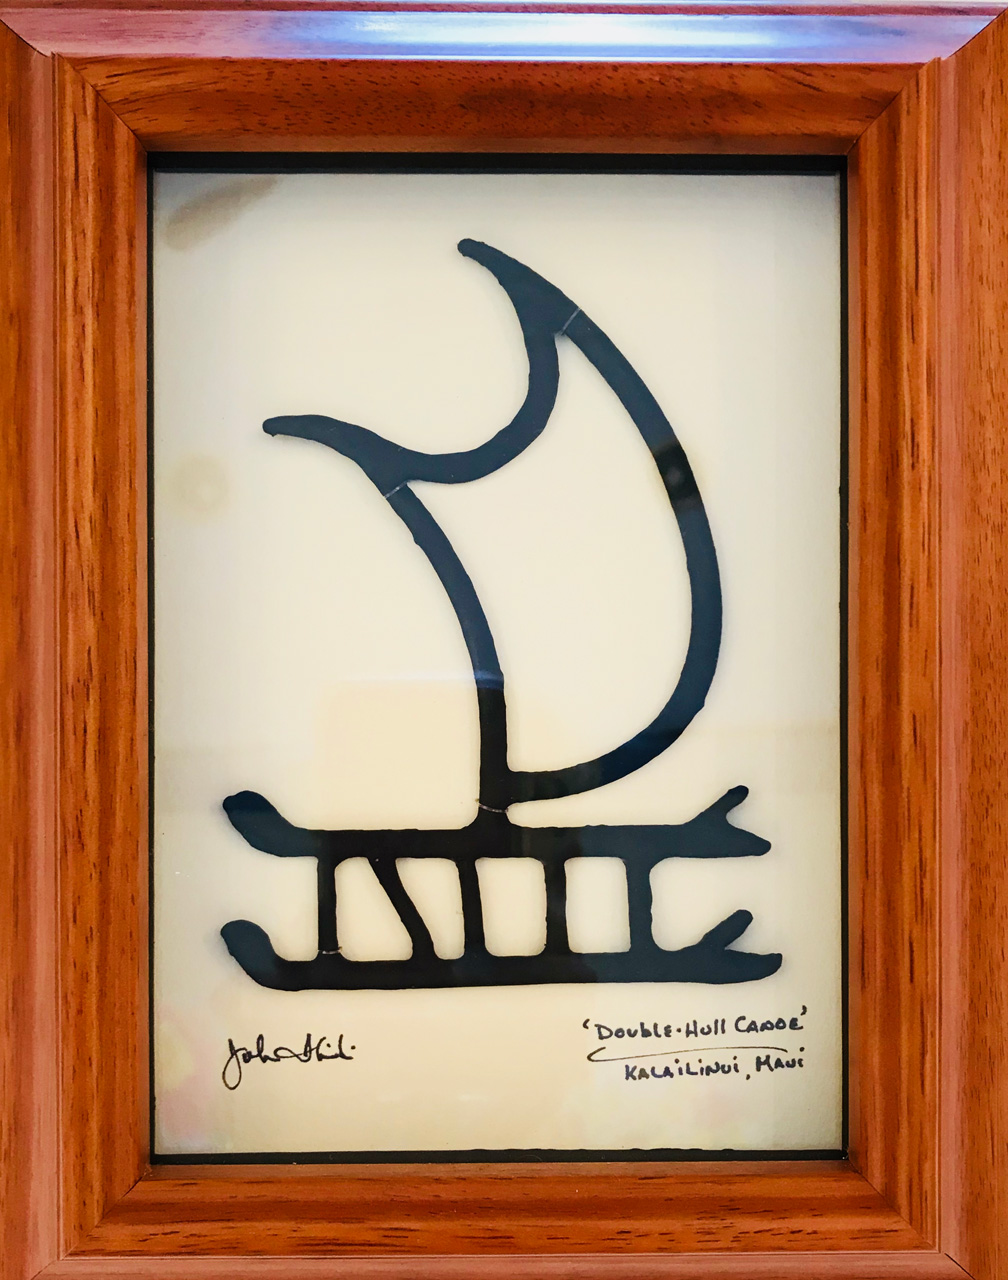 Framed metal sculpture entitled Canoe - Double Hull by John Ilnicki